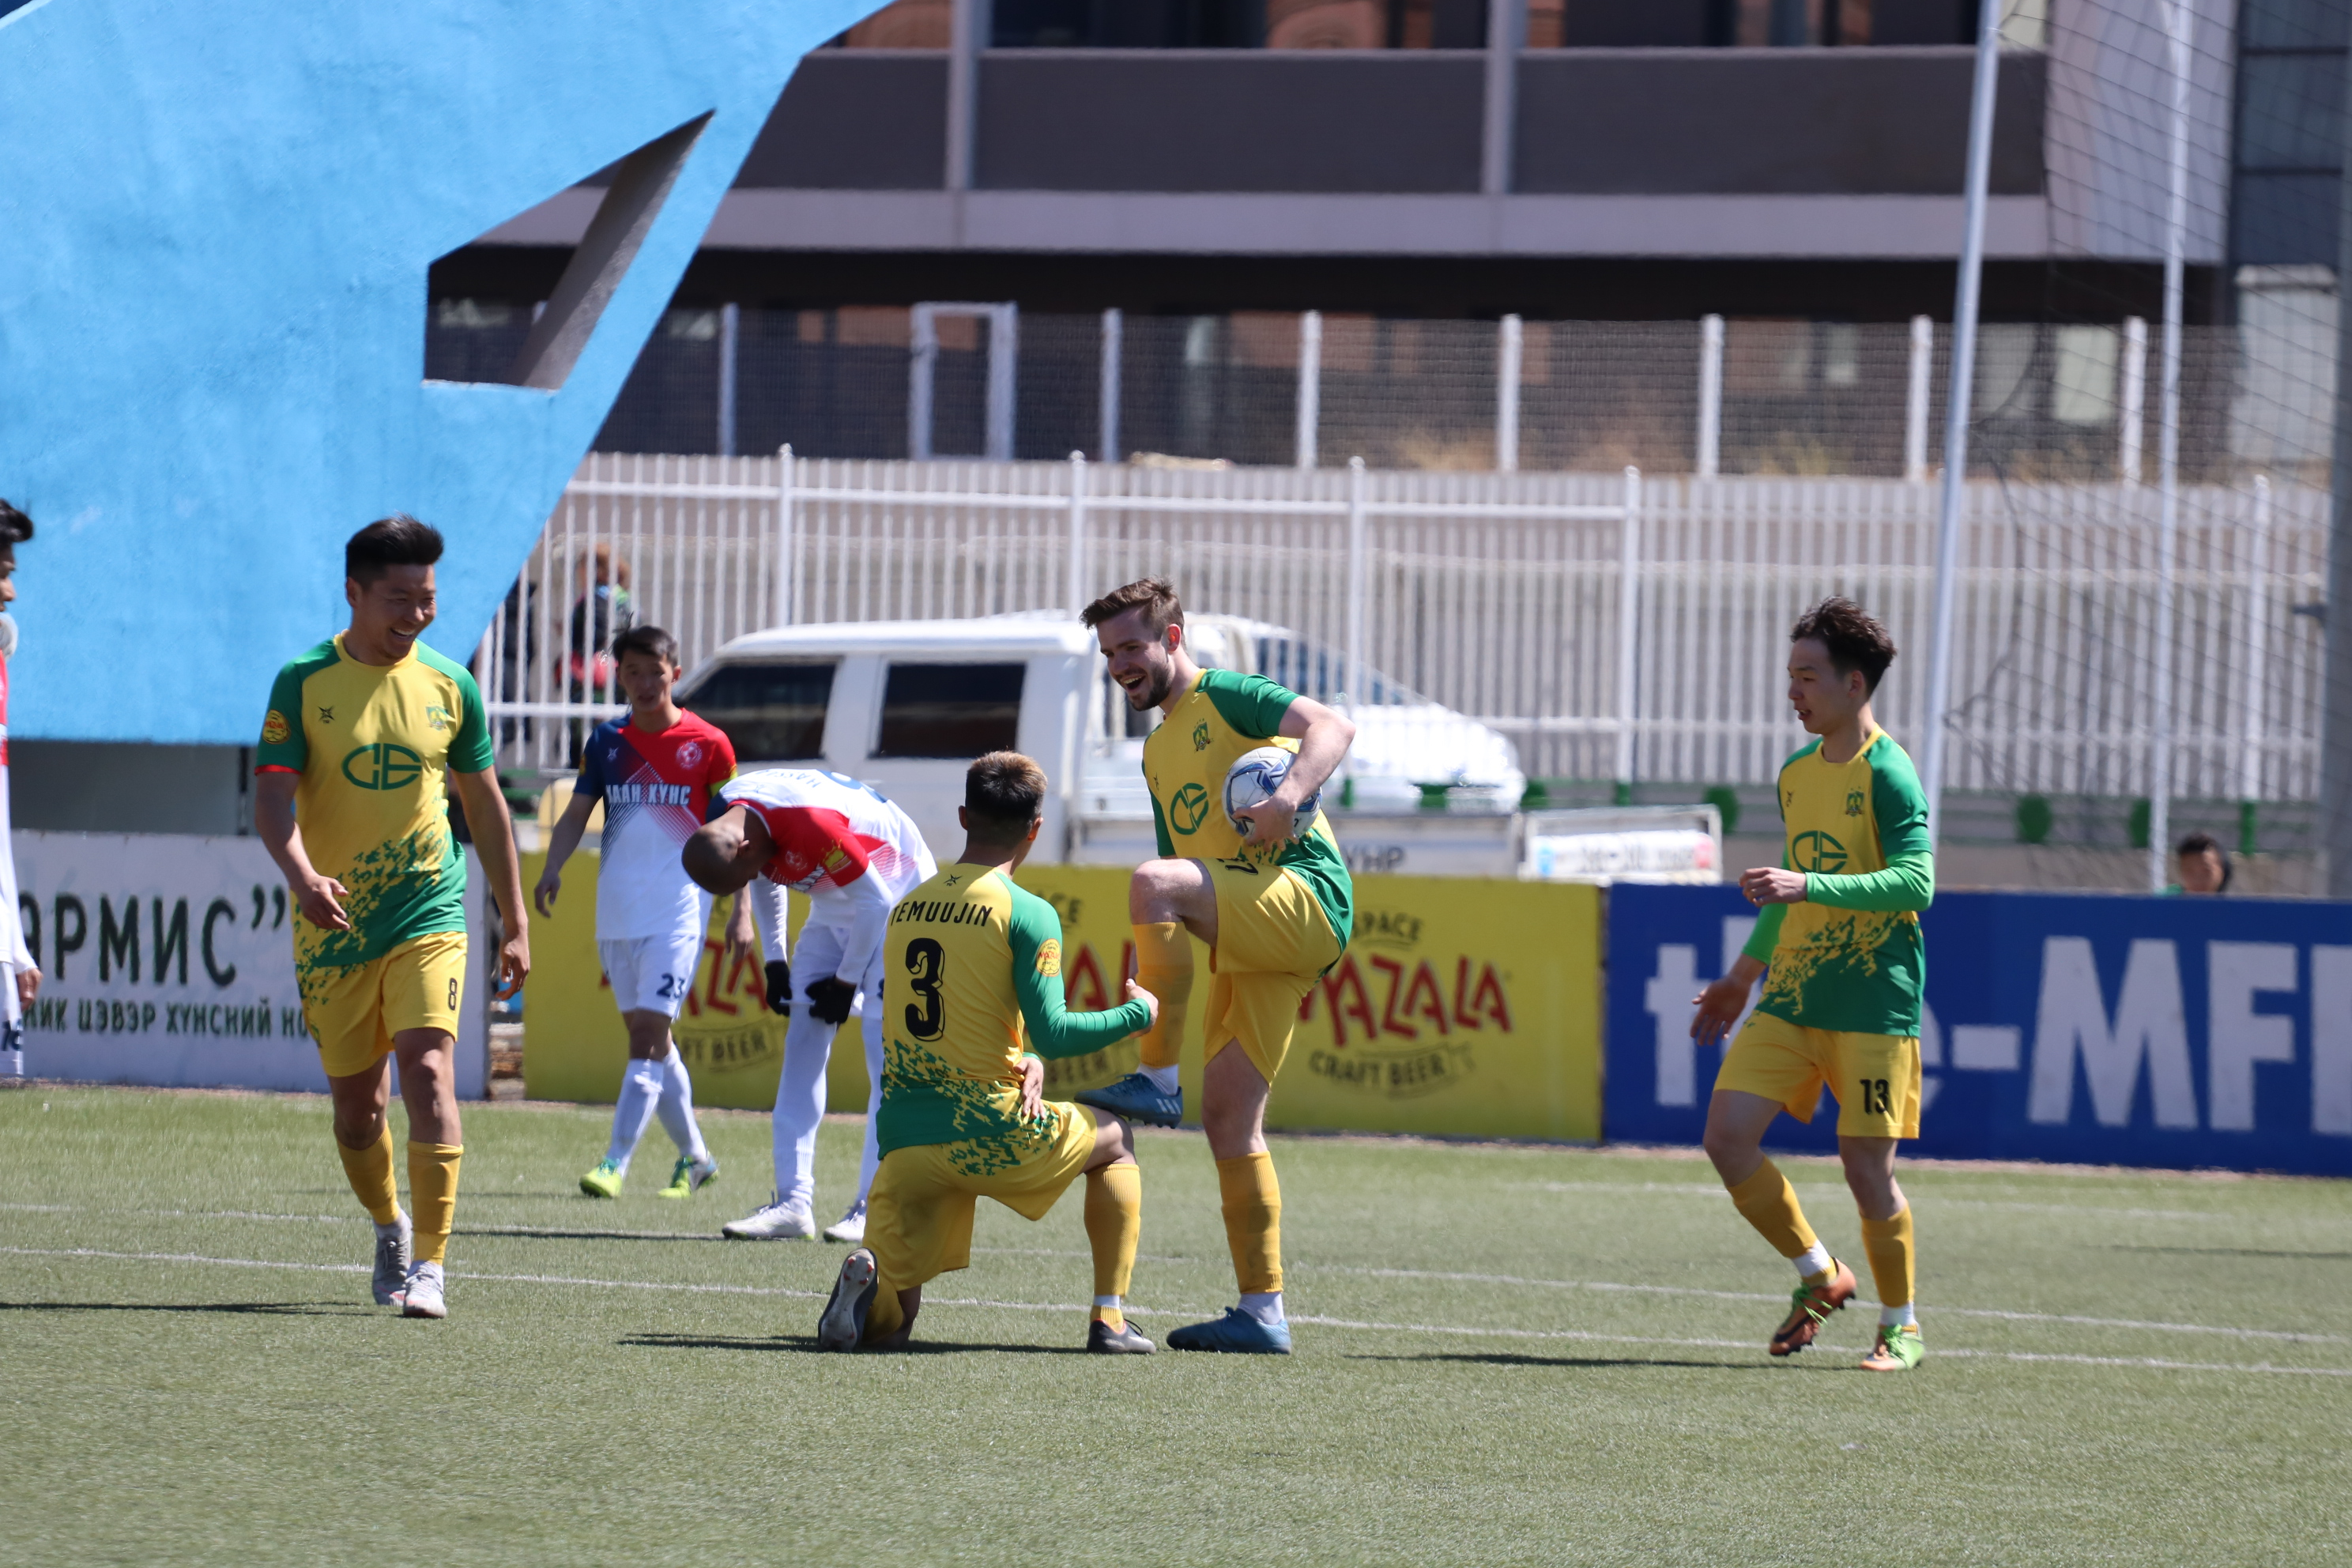 Khaan khuns Titem and Khangarid finished 5-5 in their Mongolia Premier League game on 4 May 2019